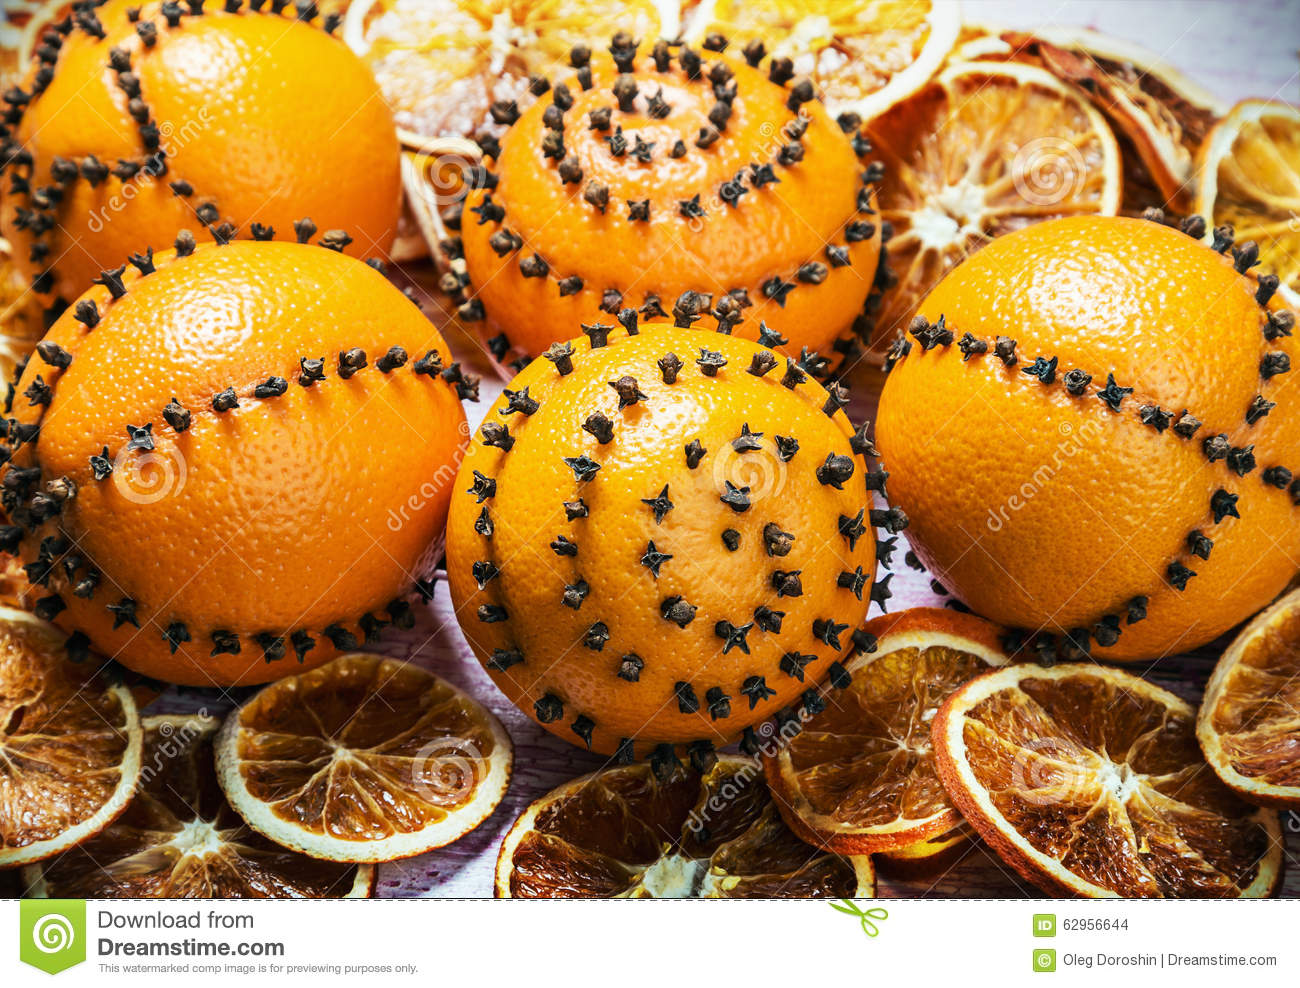 Dried oranges and oranges with cloves christmas for Baking oranges for christmas decoration